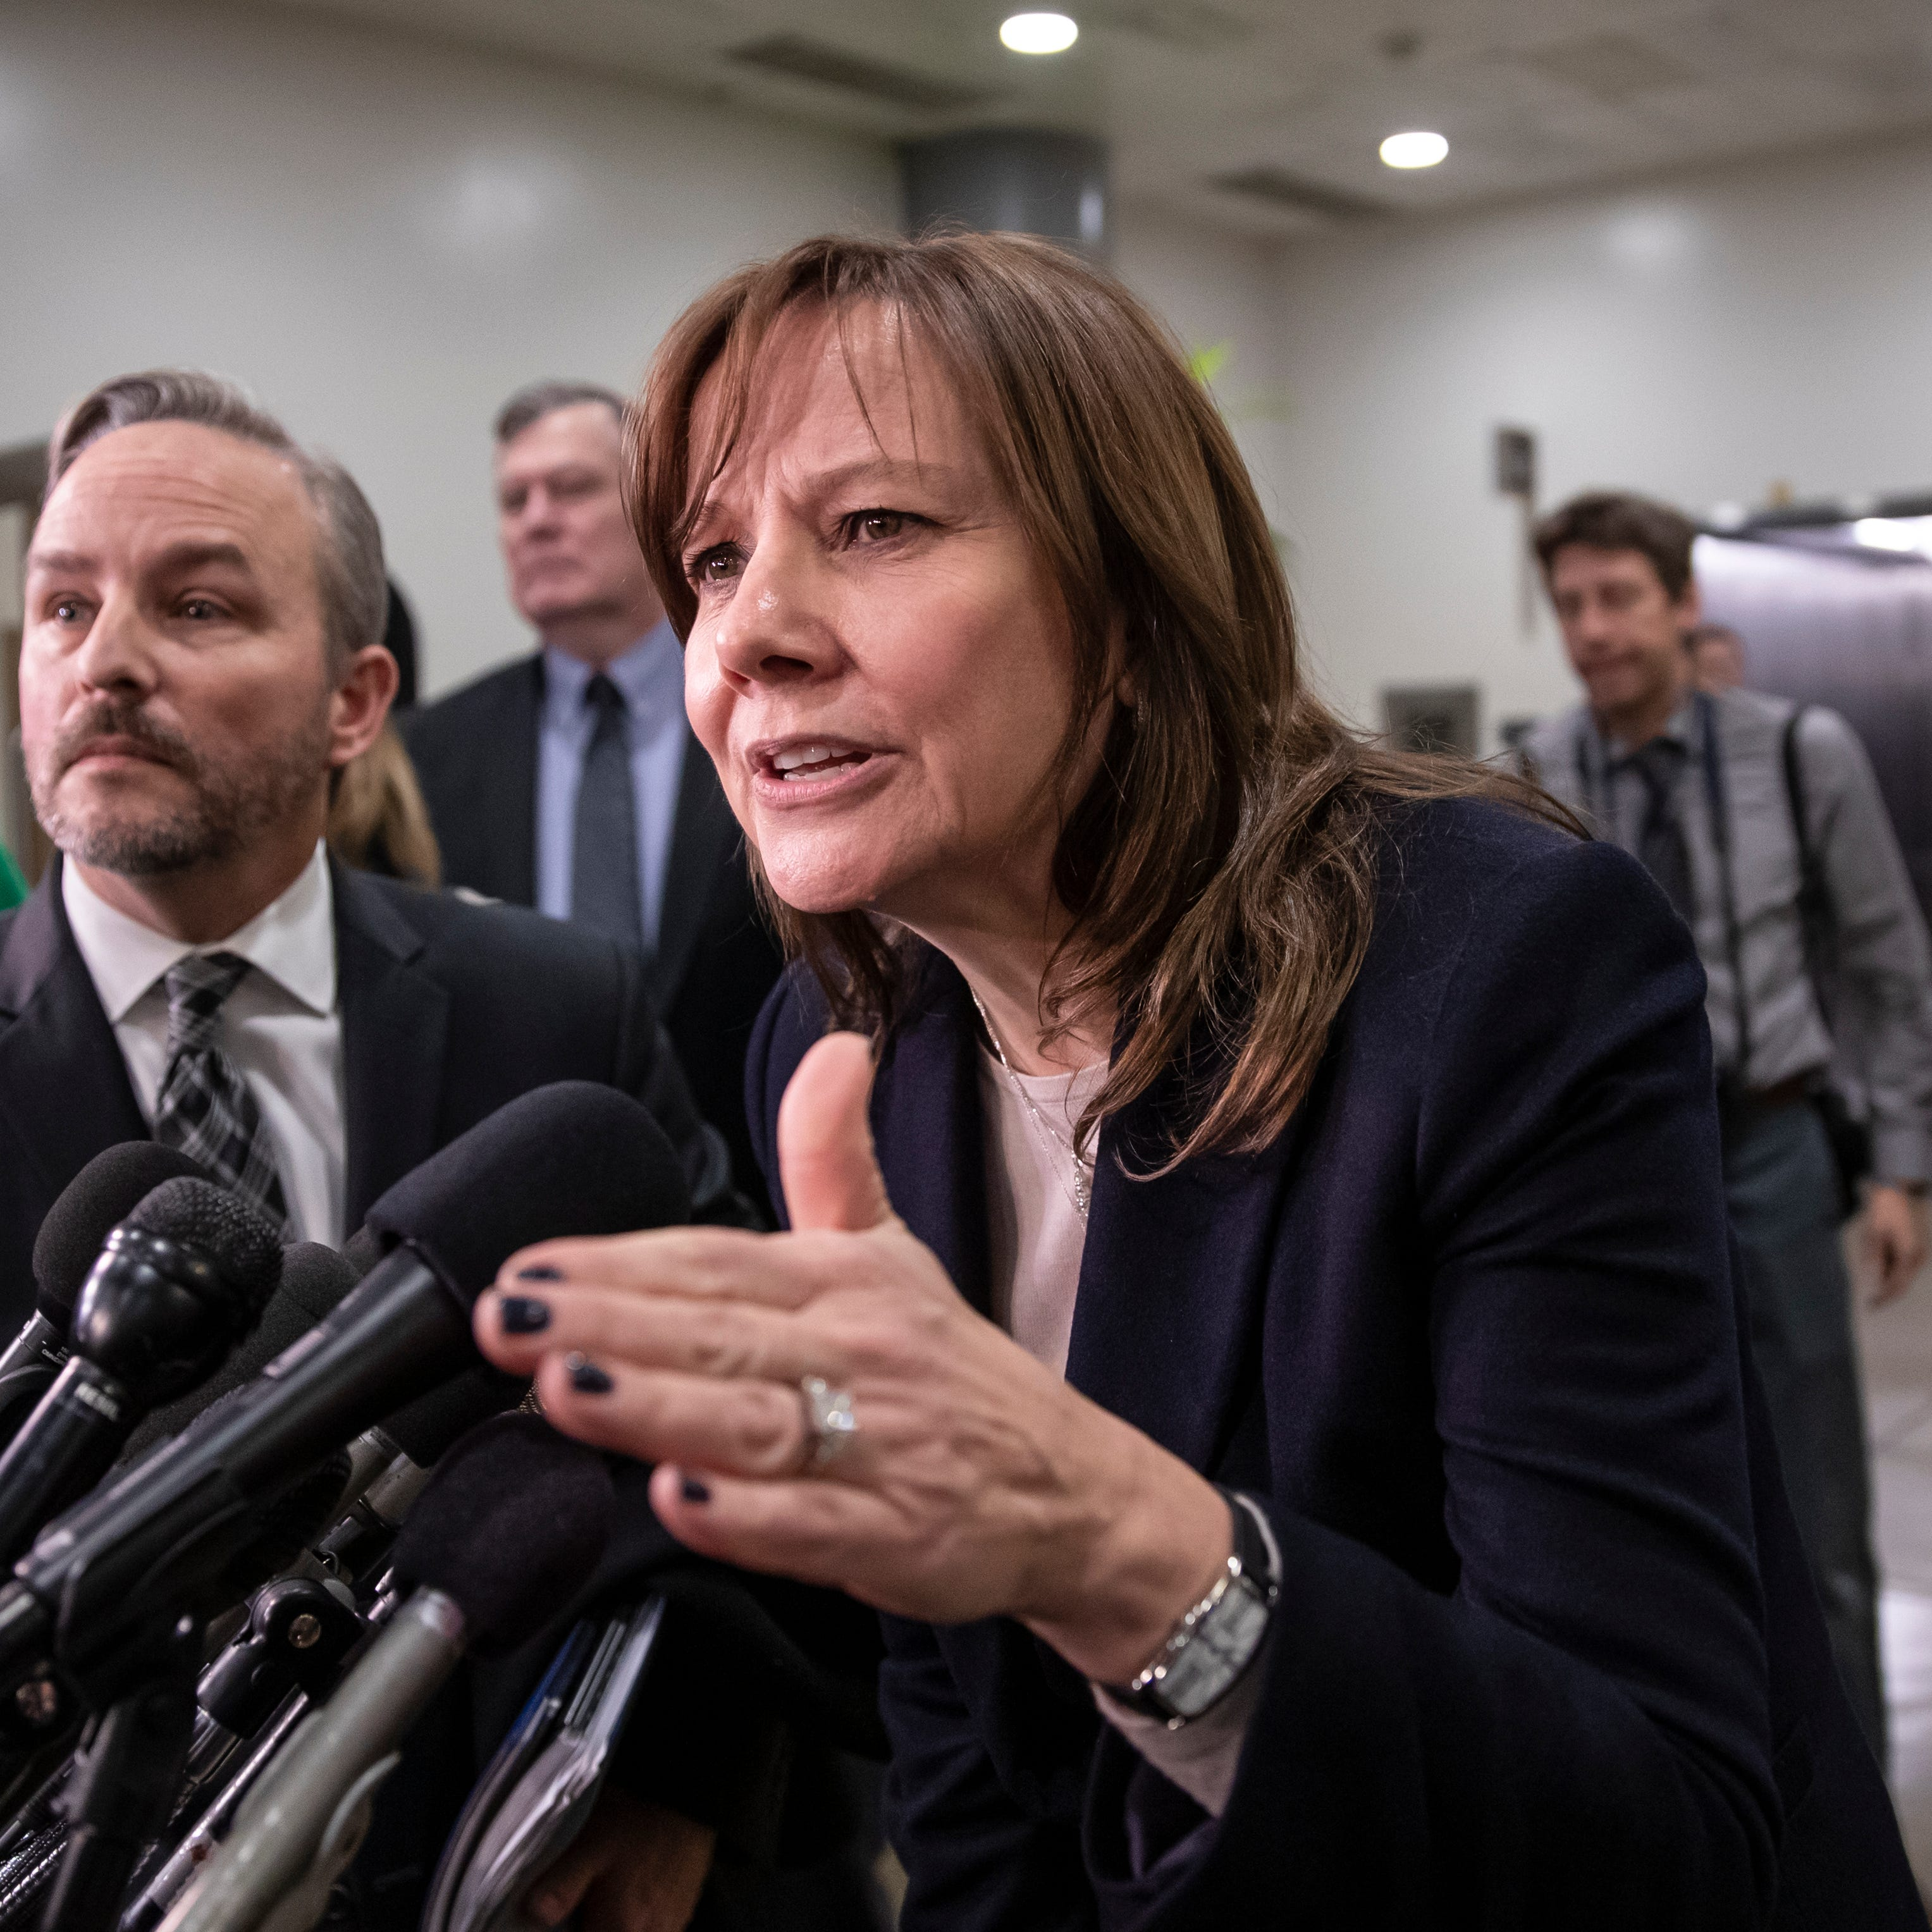 General Motors CEO Mary Barra speaks to reporters after meeting with the Michigan congressional delegation to discuss plans for the massive restructuring by the Detroit-based automaker, on Capitol Hill in Washington, Thursday, Dec. 6, 2018.